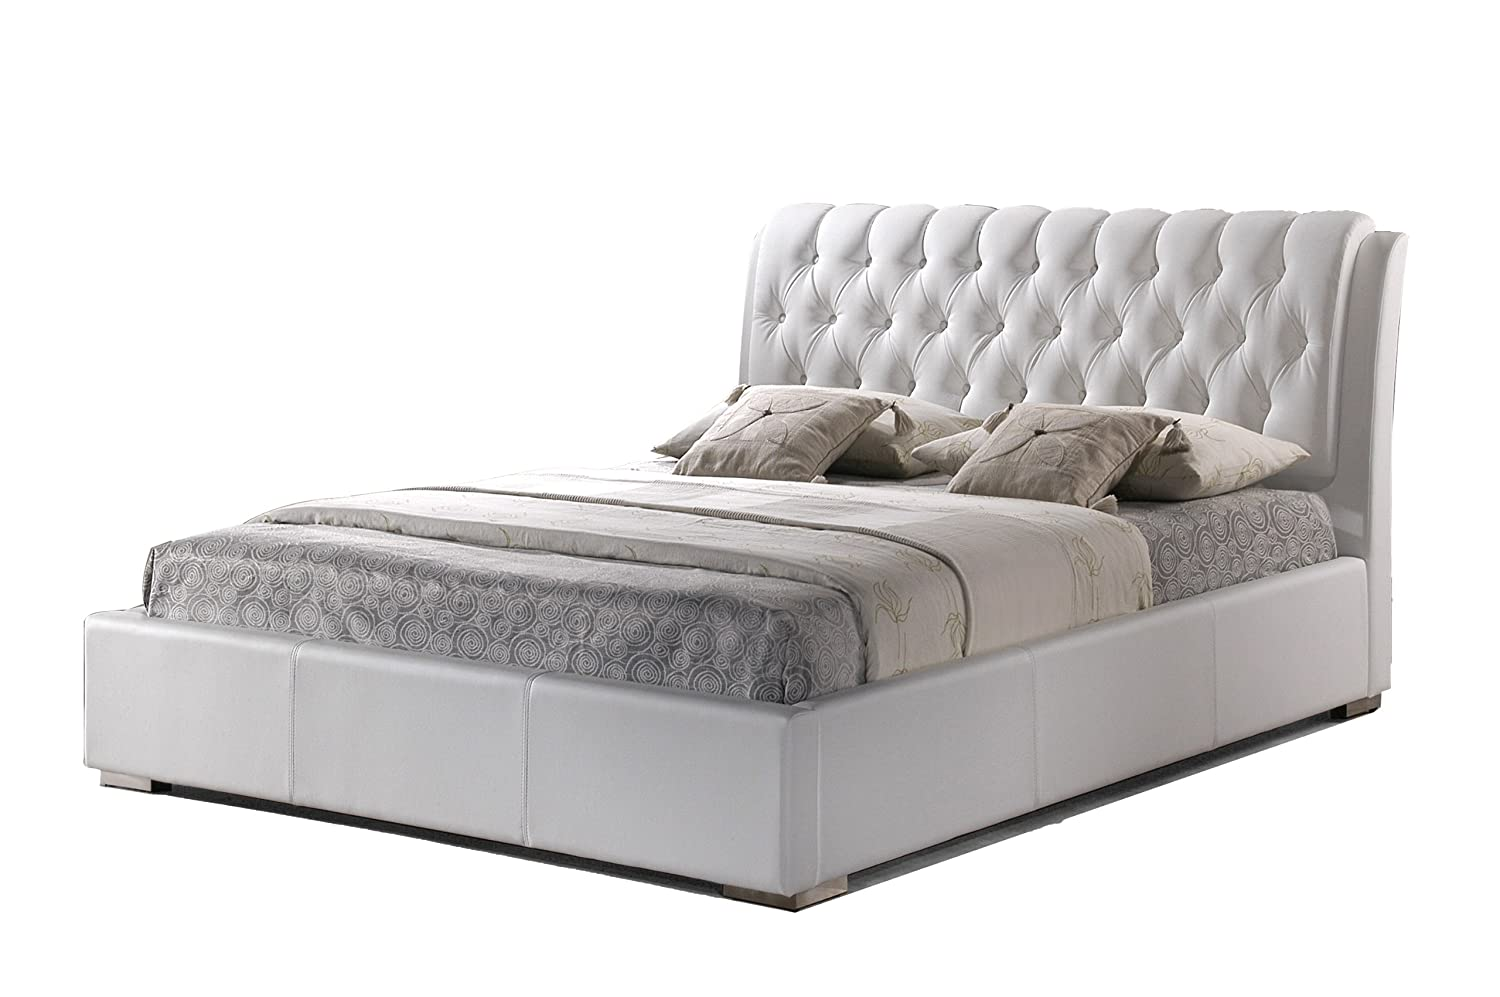 amazoncom baxton studio bianca white modern bed with tufted headboard queen kitchen dining - Modern Queen Bed Frame